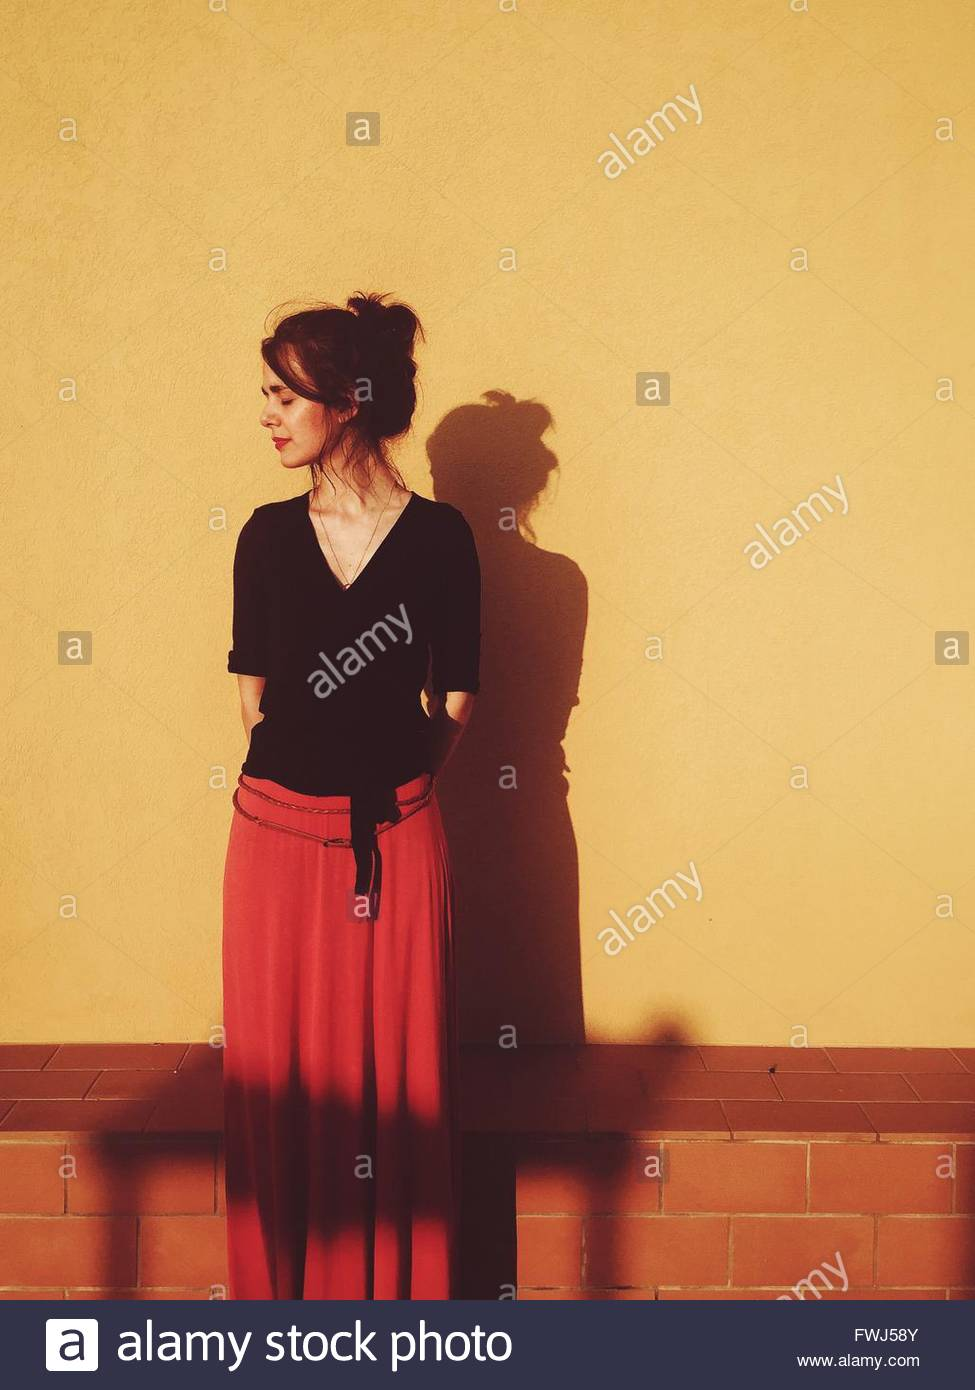 Woman With Eyes Closed Standing Against Wall - Stock Image